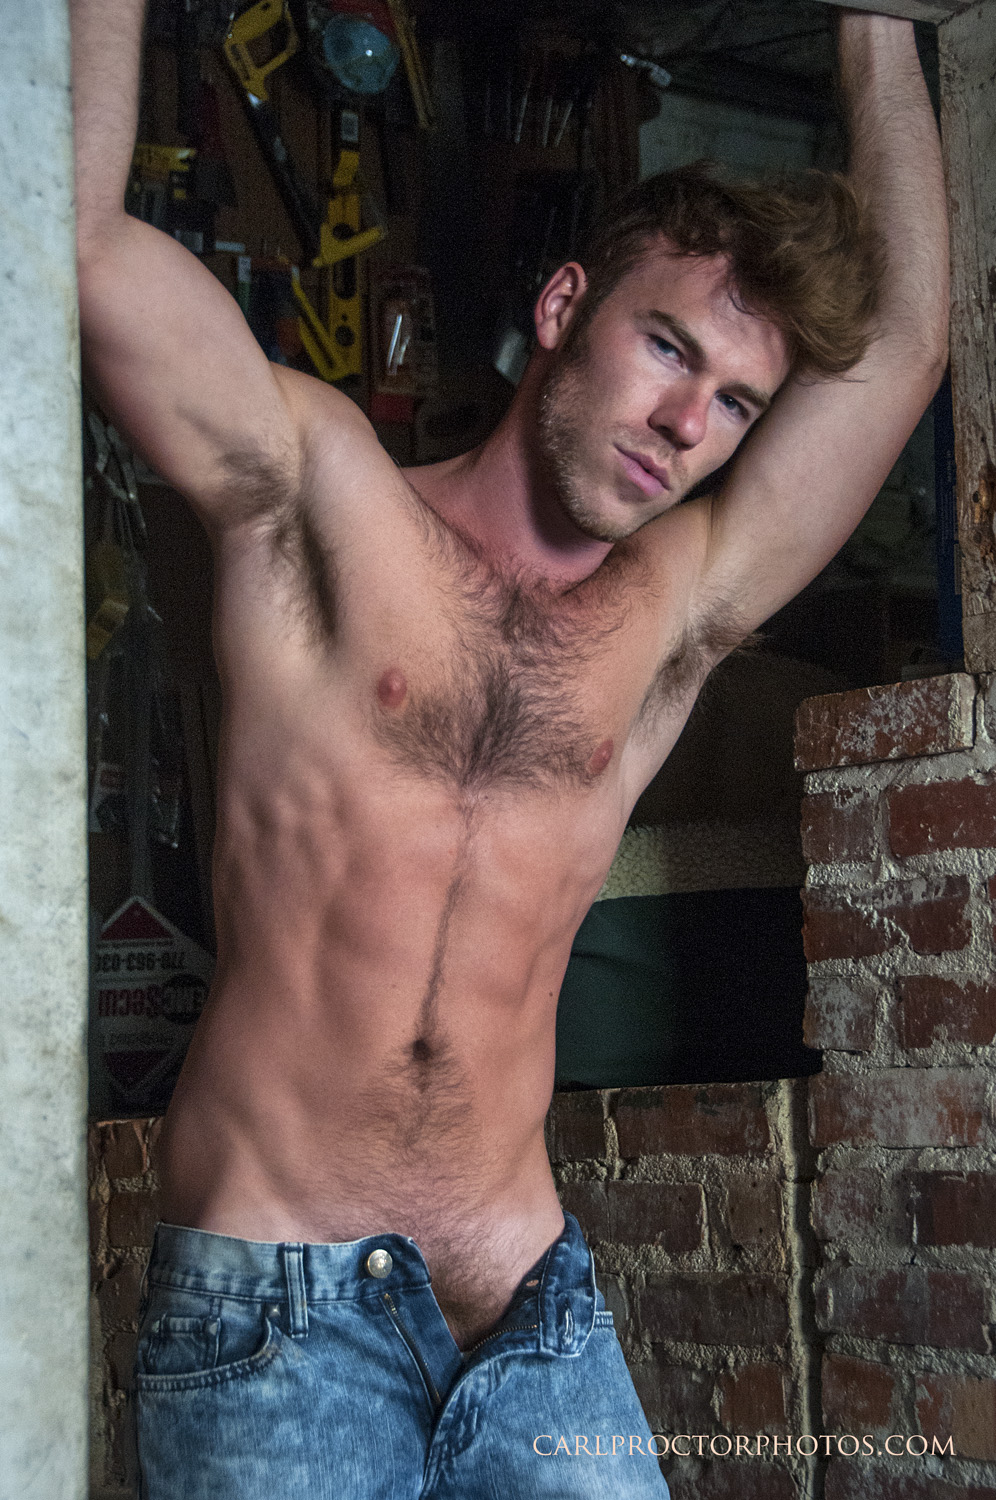 EXCLUSIVE: DW Chase by Carl Proctor - Fashionably Male